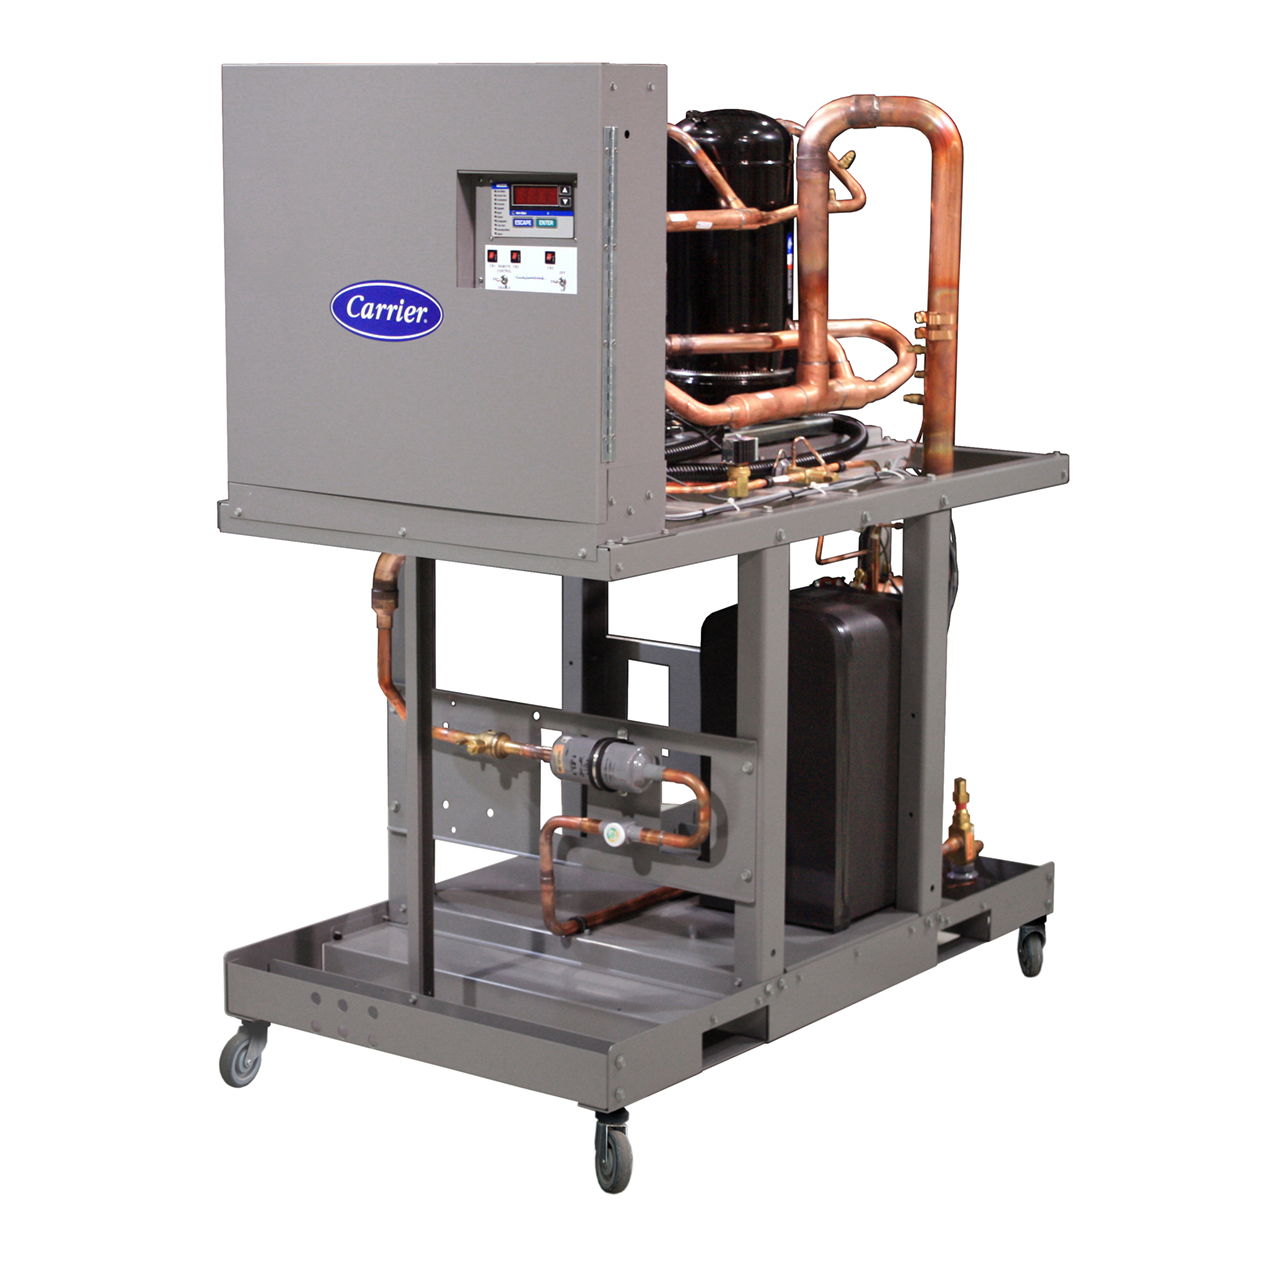 AquaSnap® 30MP packaged liquid and condenserless chillers feature a compact modular design that makes them ideal for easy replacement, retrofit, or new construction applications.